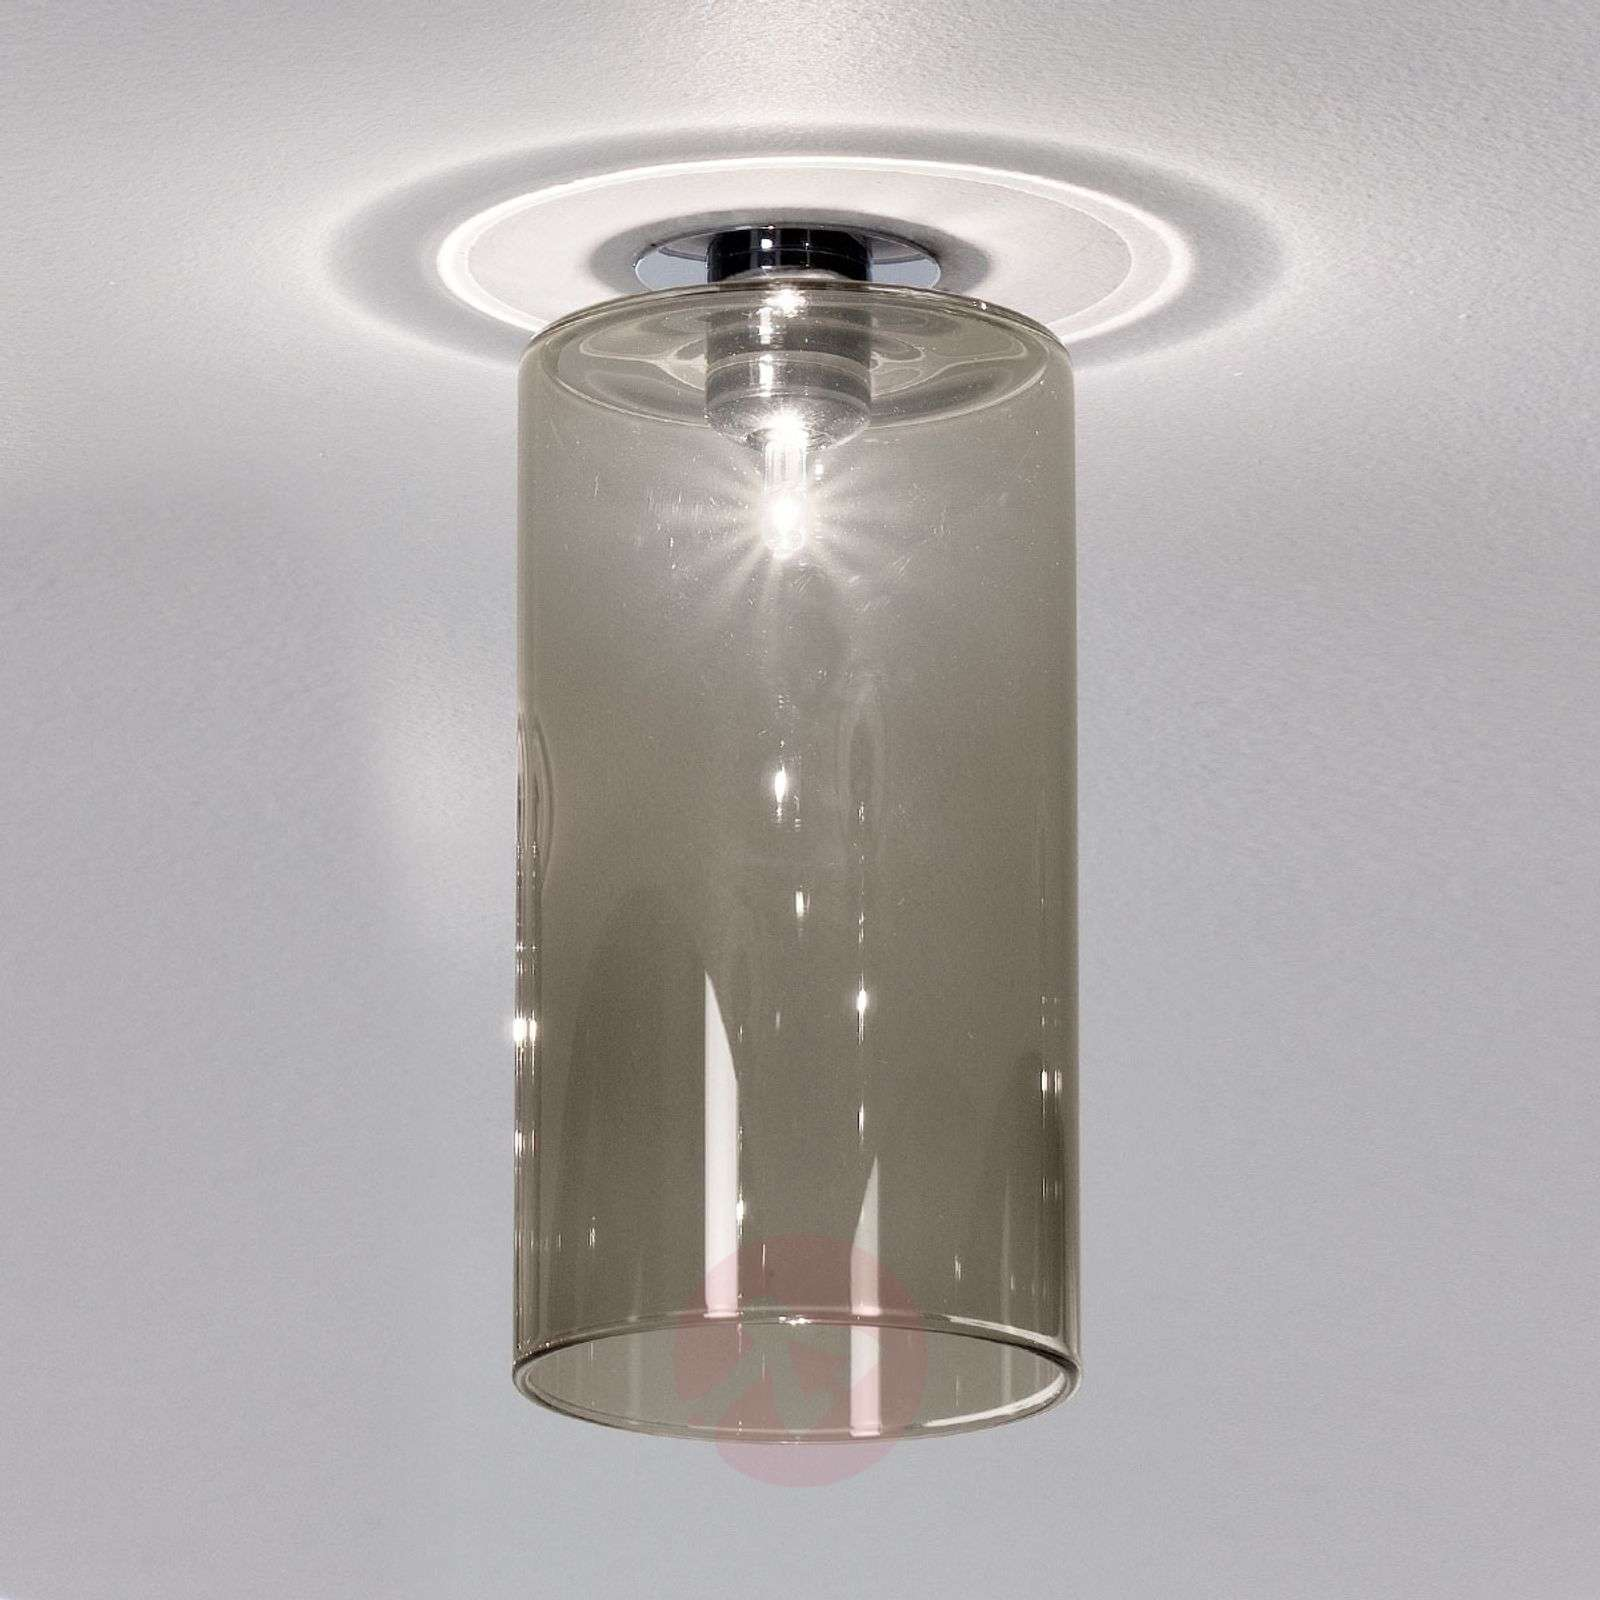 Spillray installed light with grey glass shade-1088050-01